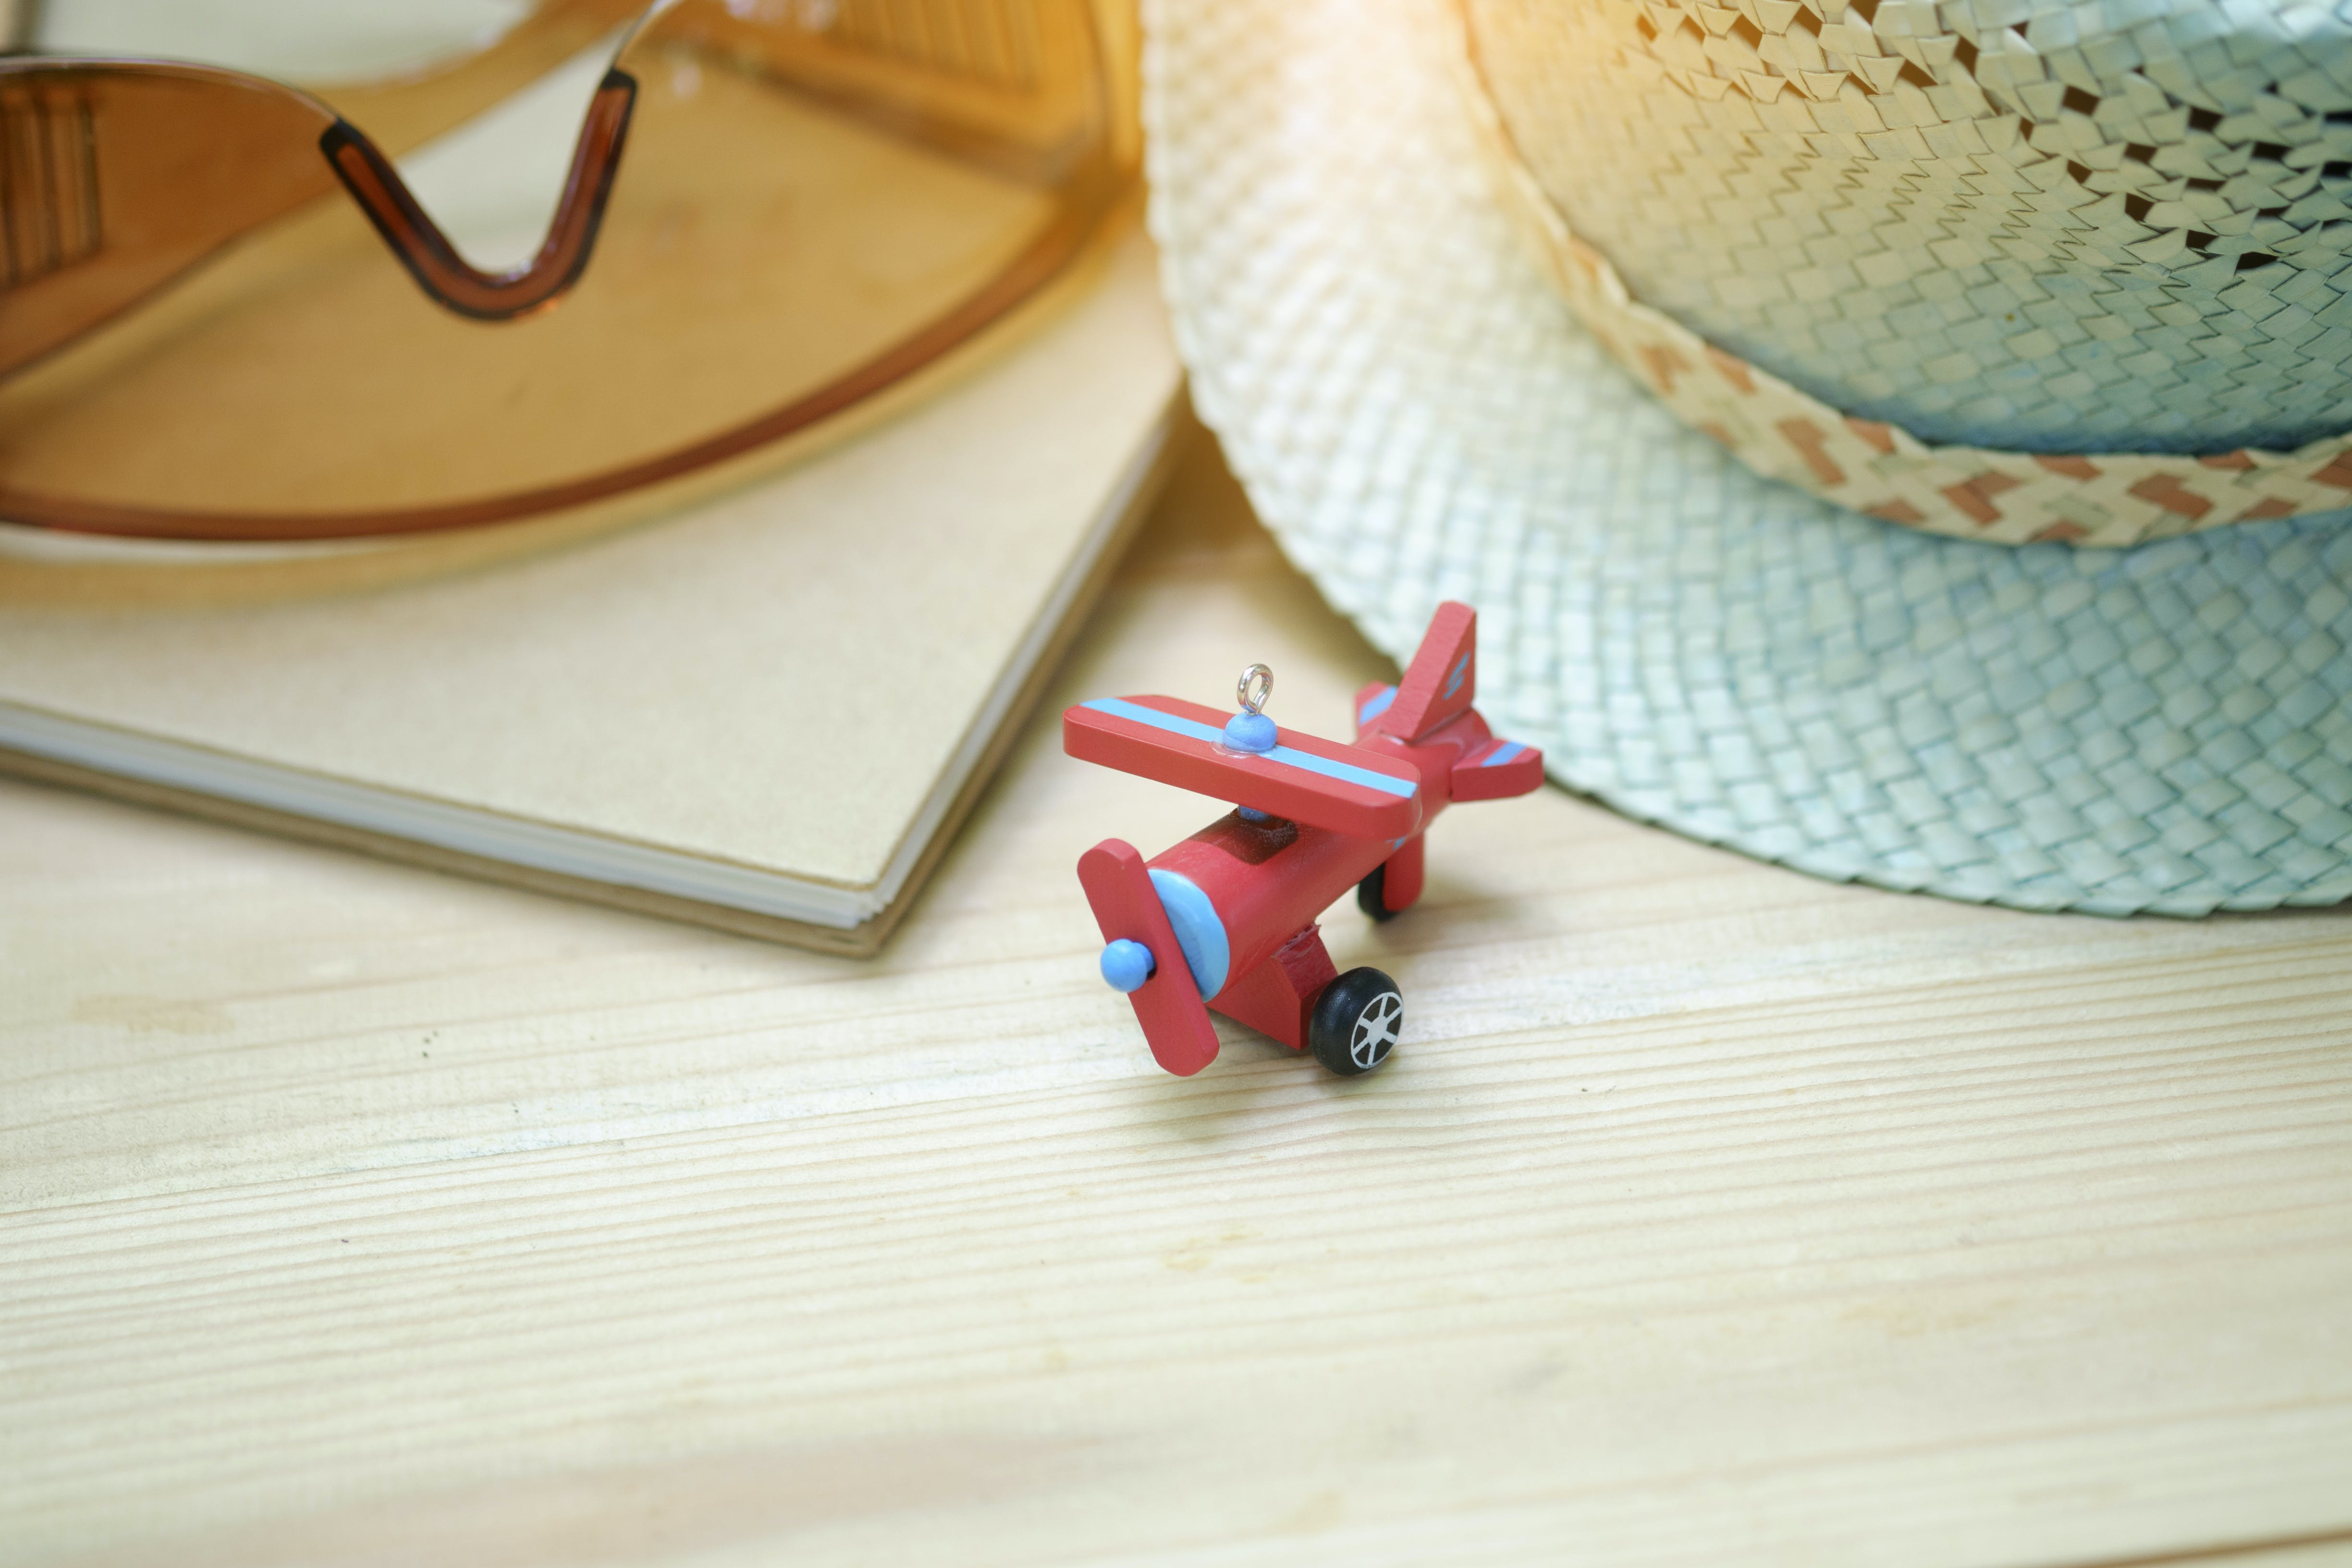 Red Airplane Toy